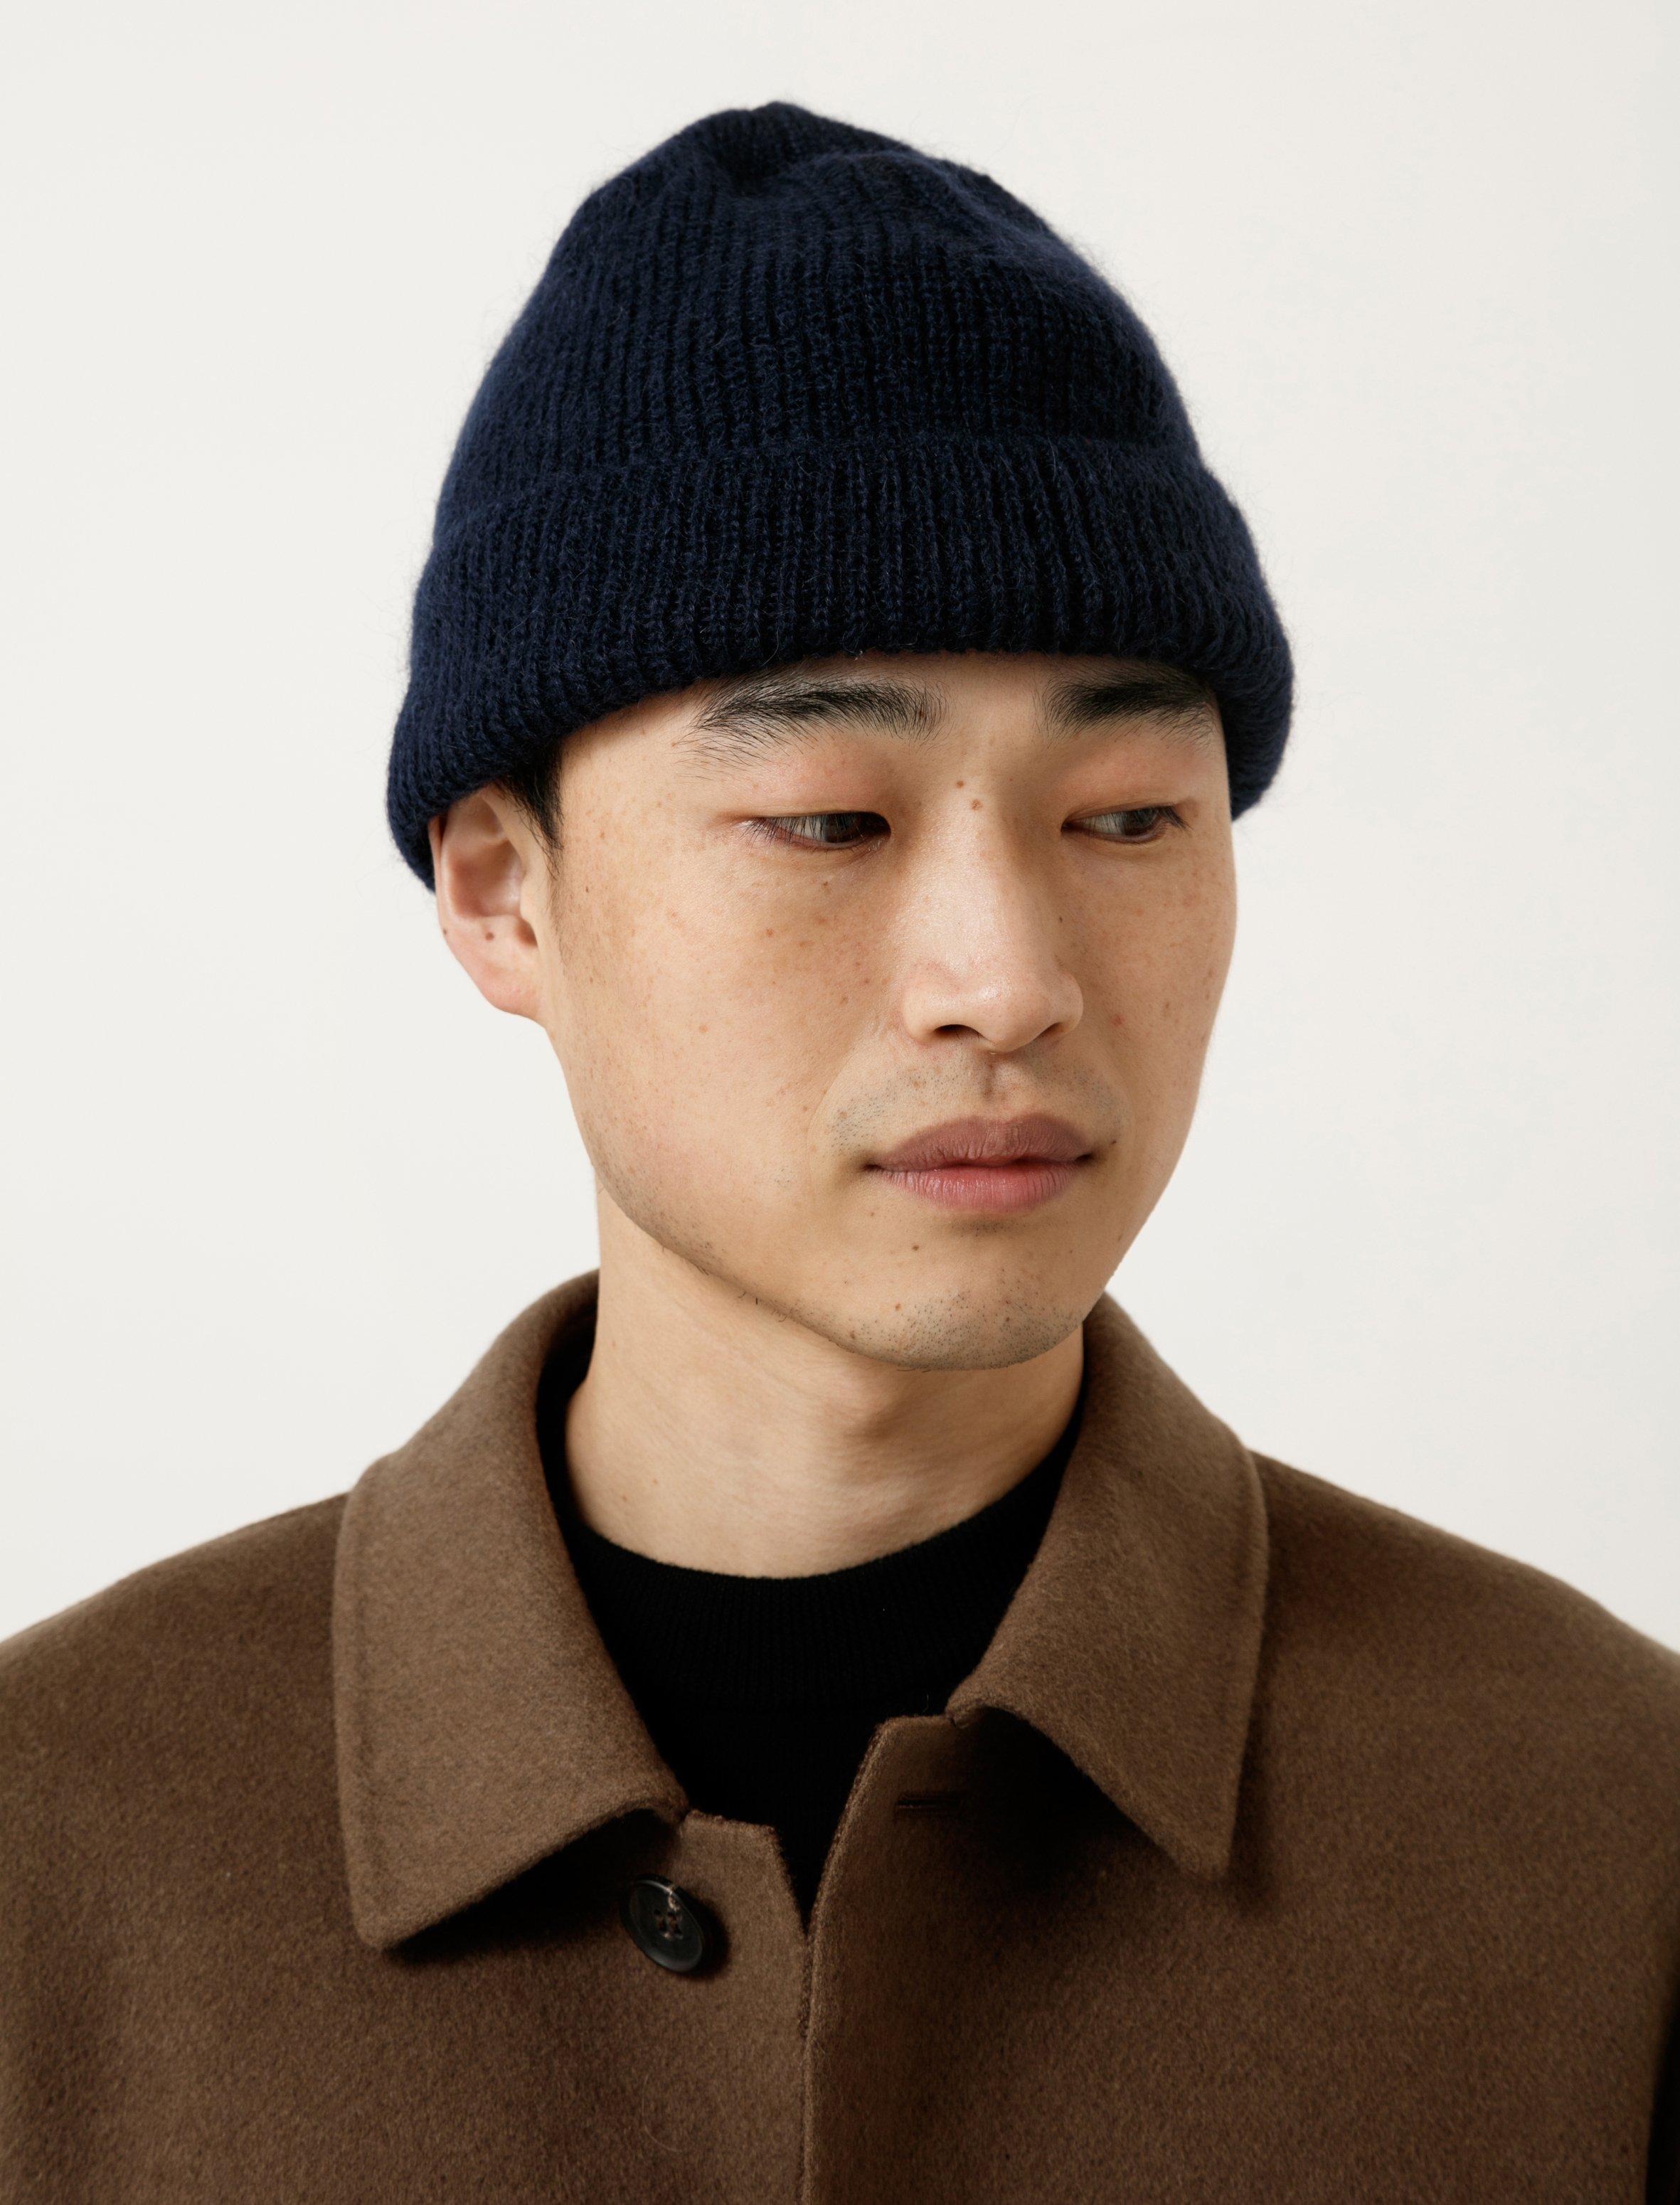 047c083e0 Our Legacy Knitted Hat - Navy Mohair